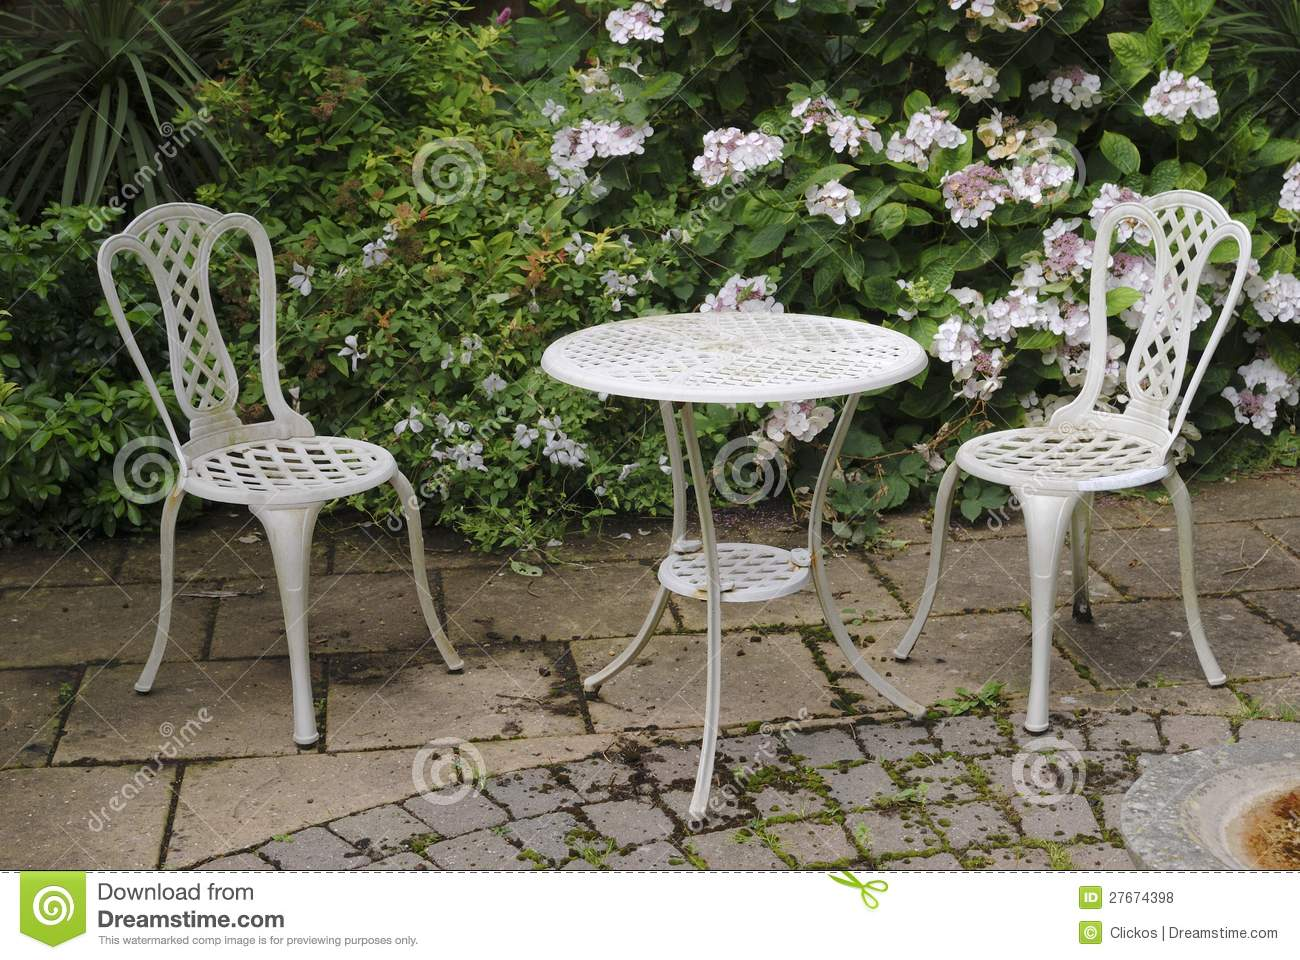 garden table and chairs bush garden hydrangea patio table ironwork paving plant flower chairless TLJTRKN